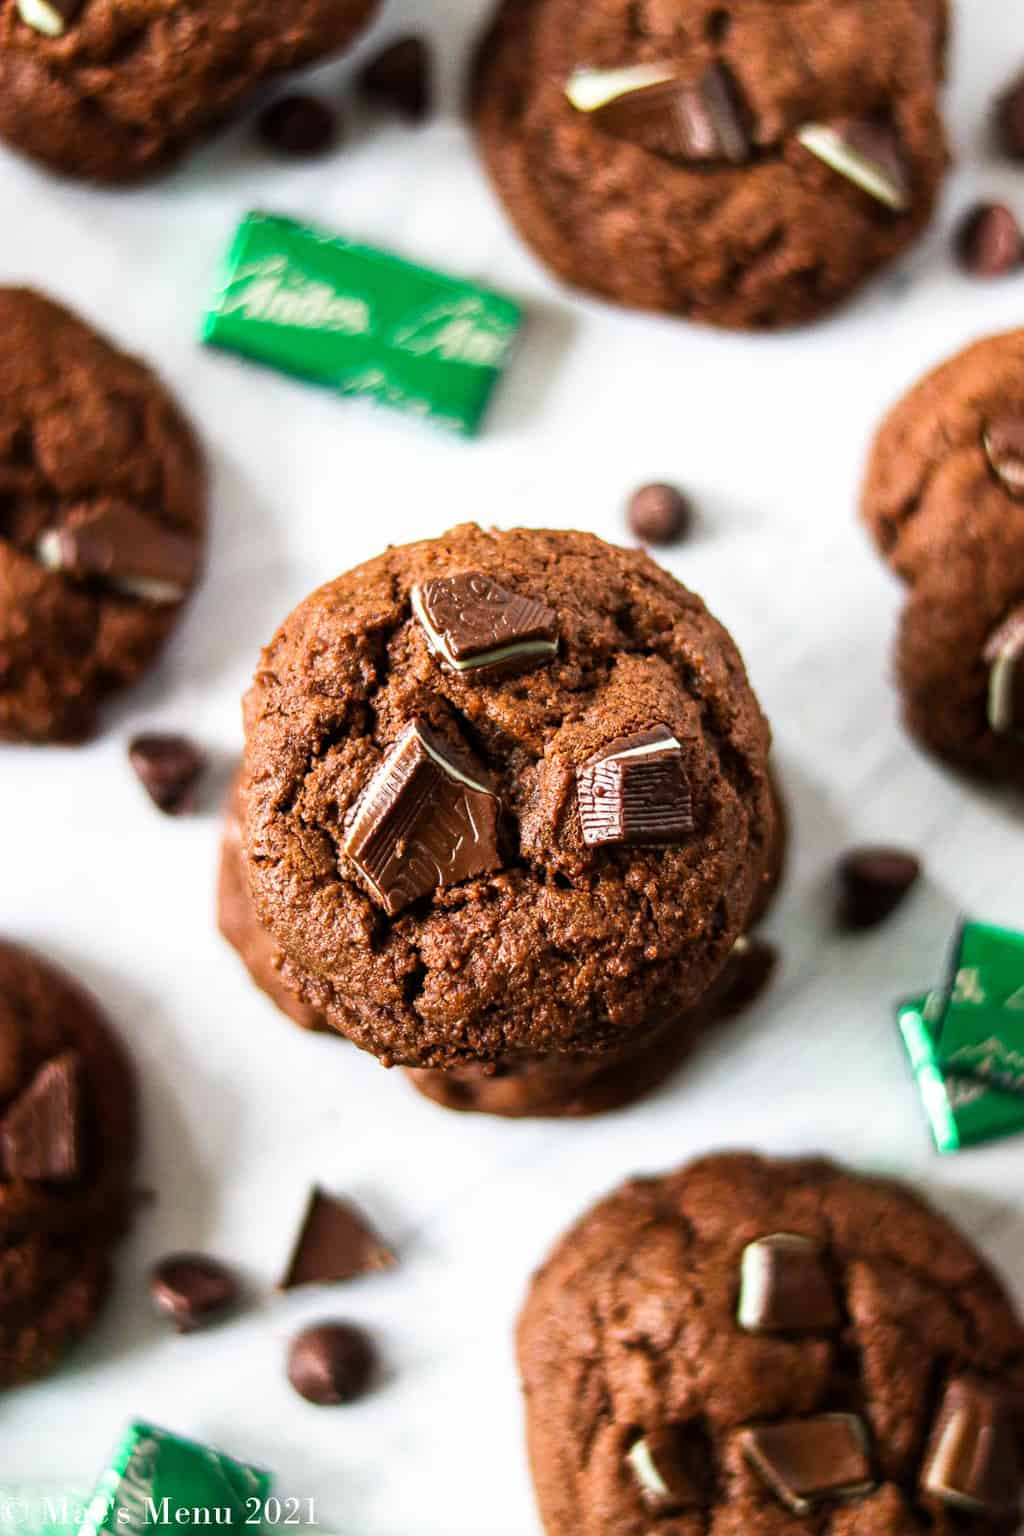 An upclose overhead shot of a stack of andes mint chocolate chip cookies